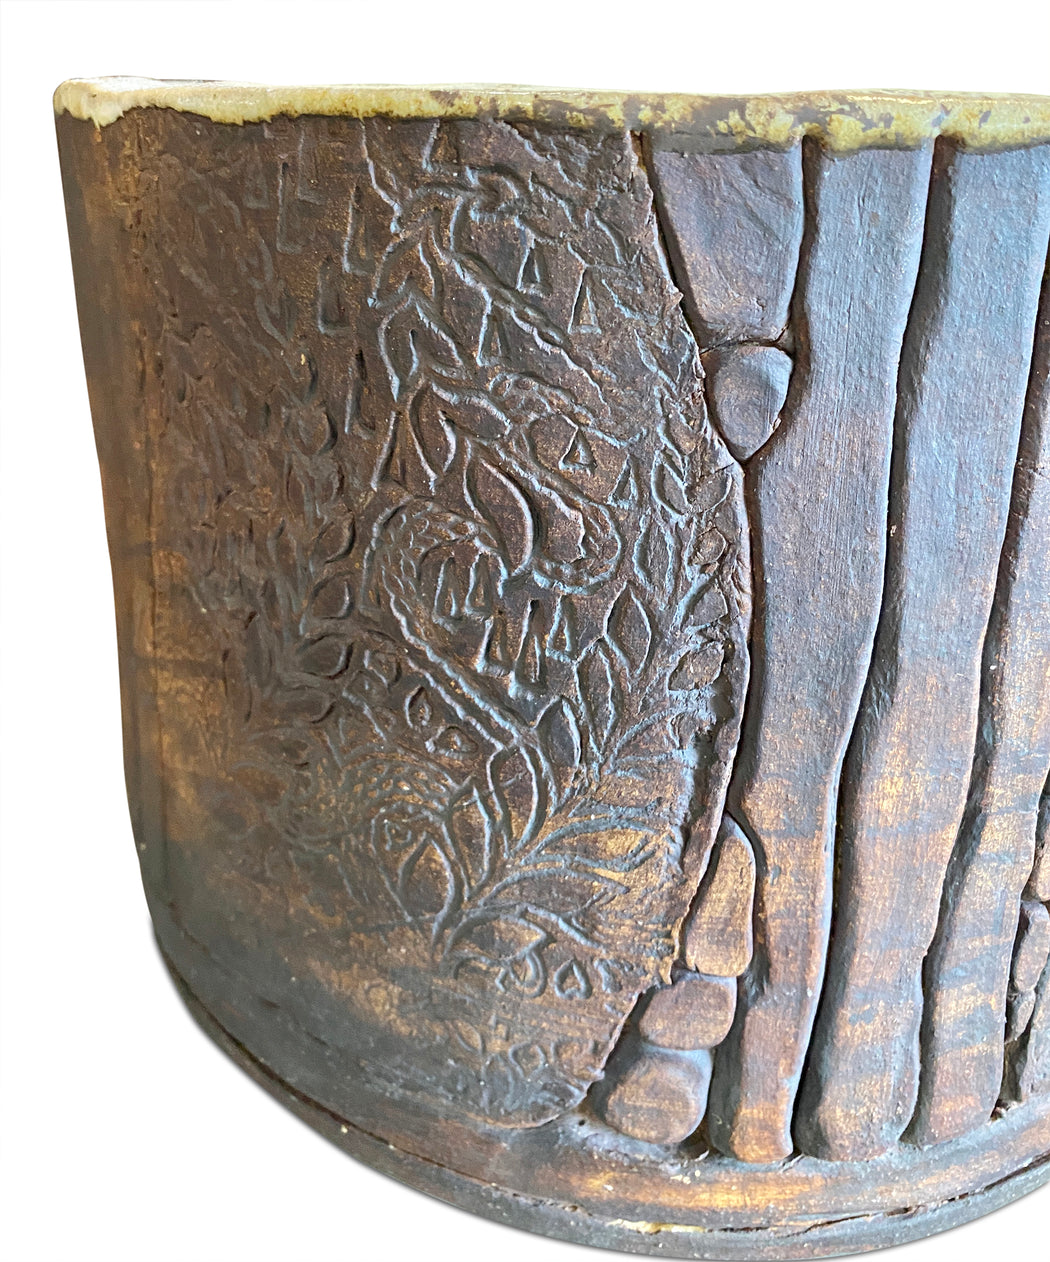 Etched Ceramic Planter